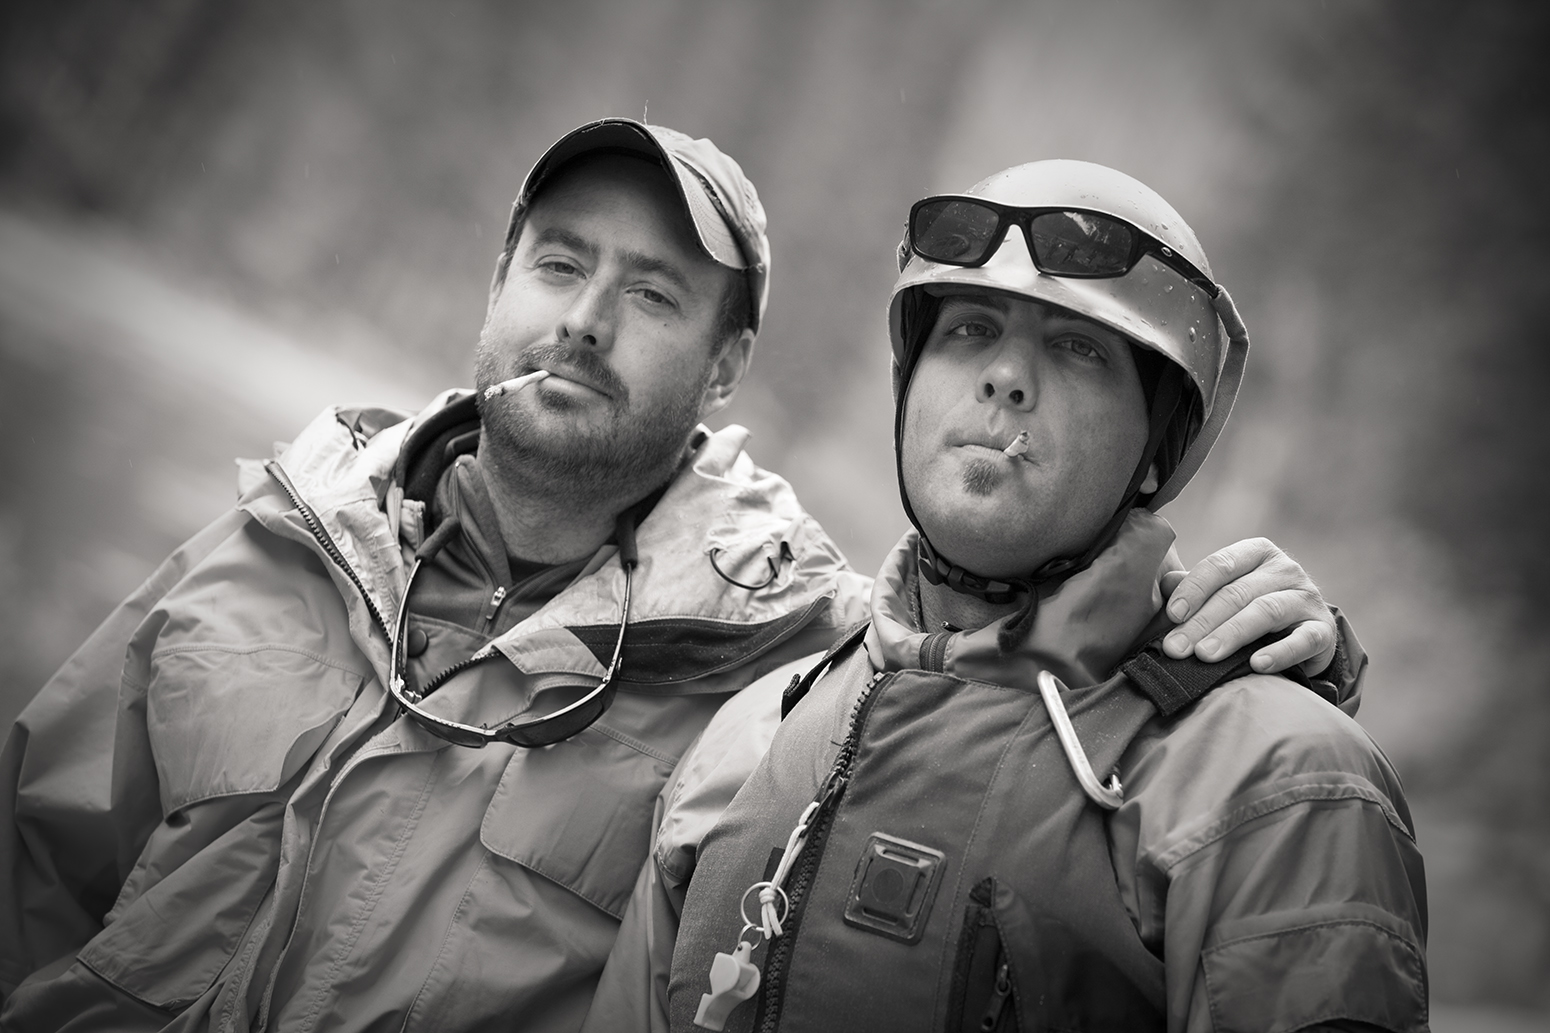 Past and present river guides, the brothers Landward, on the River of No Return, Spring 2010.